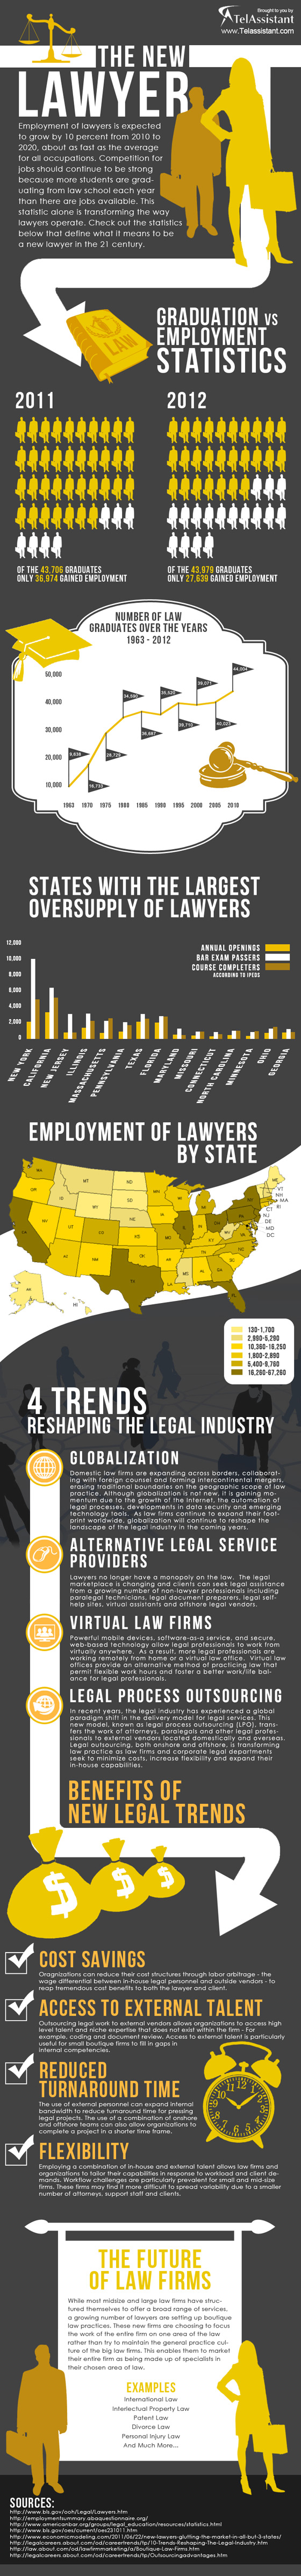 Lawyer-Industry-Statistics-and-Trends